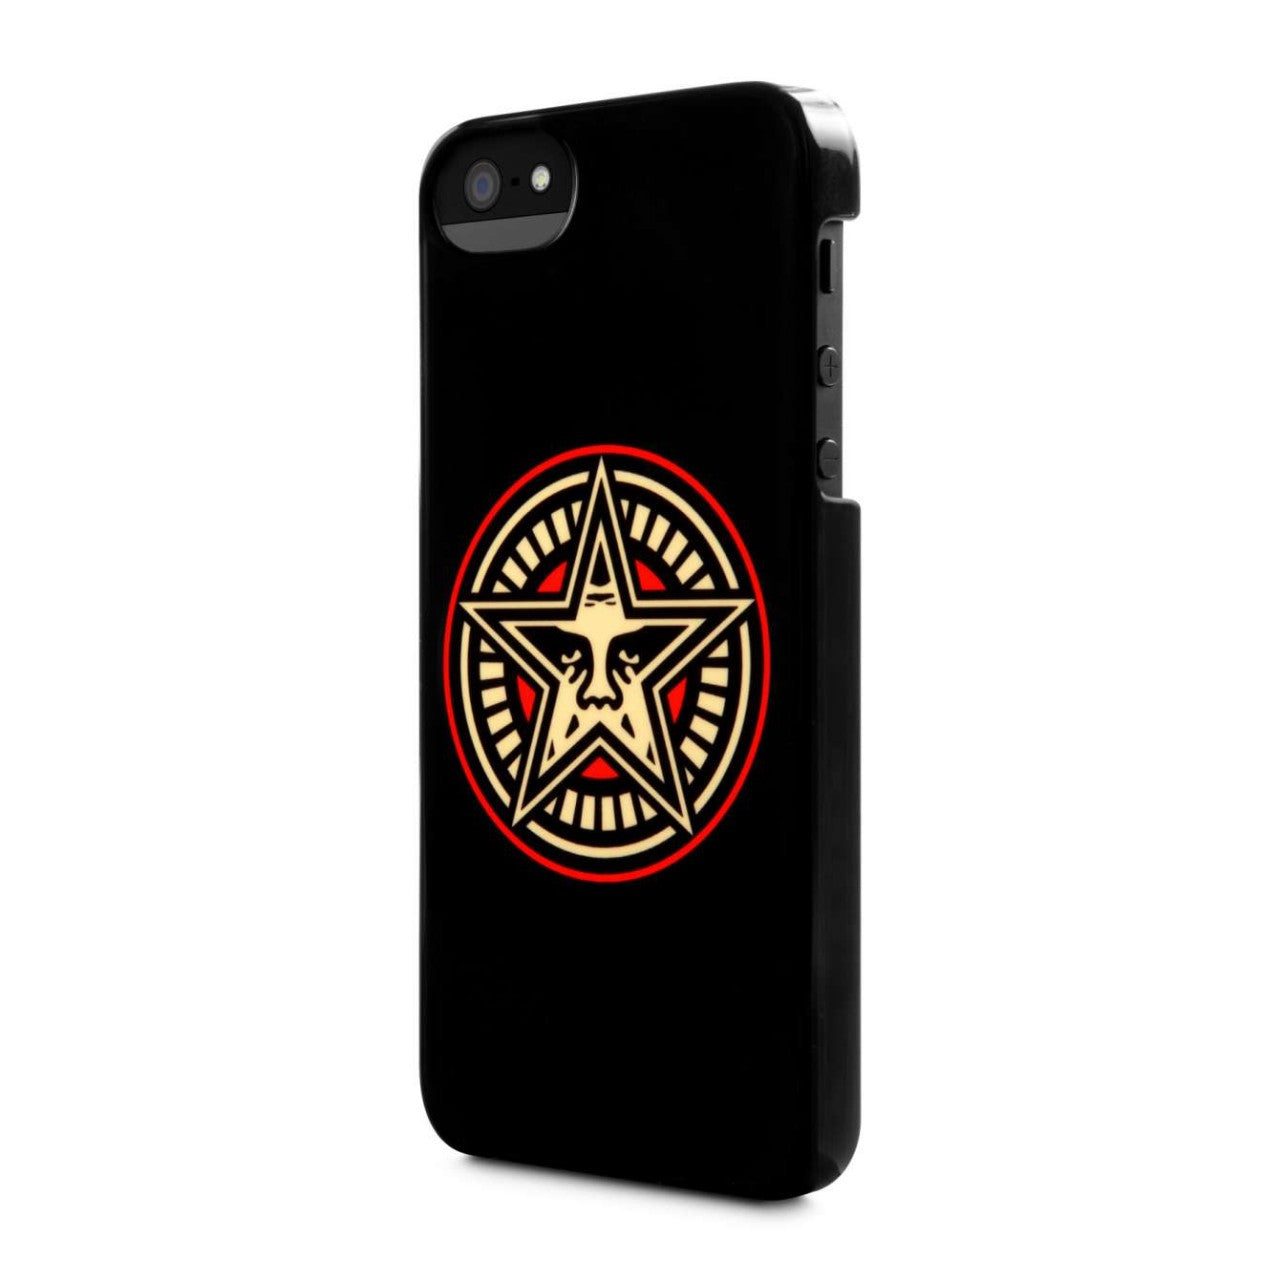 Incase x Shepard Fairey - Star Gear Case for iPhone 5 - The Giant Peach - 2